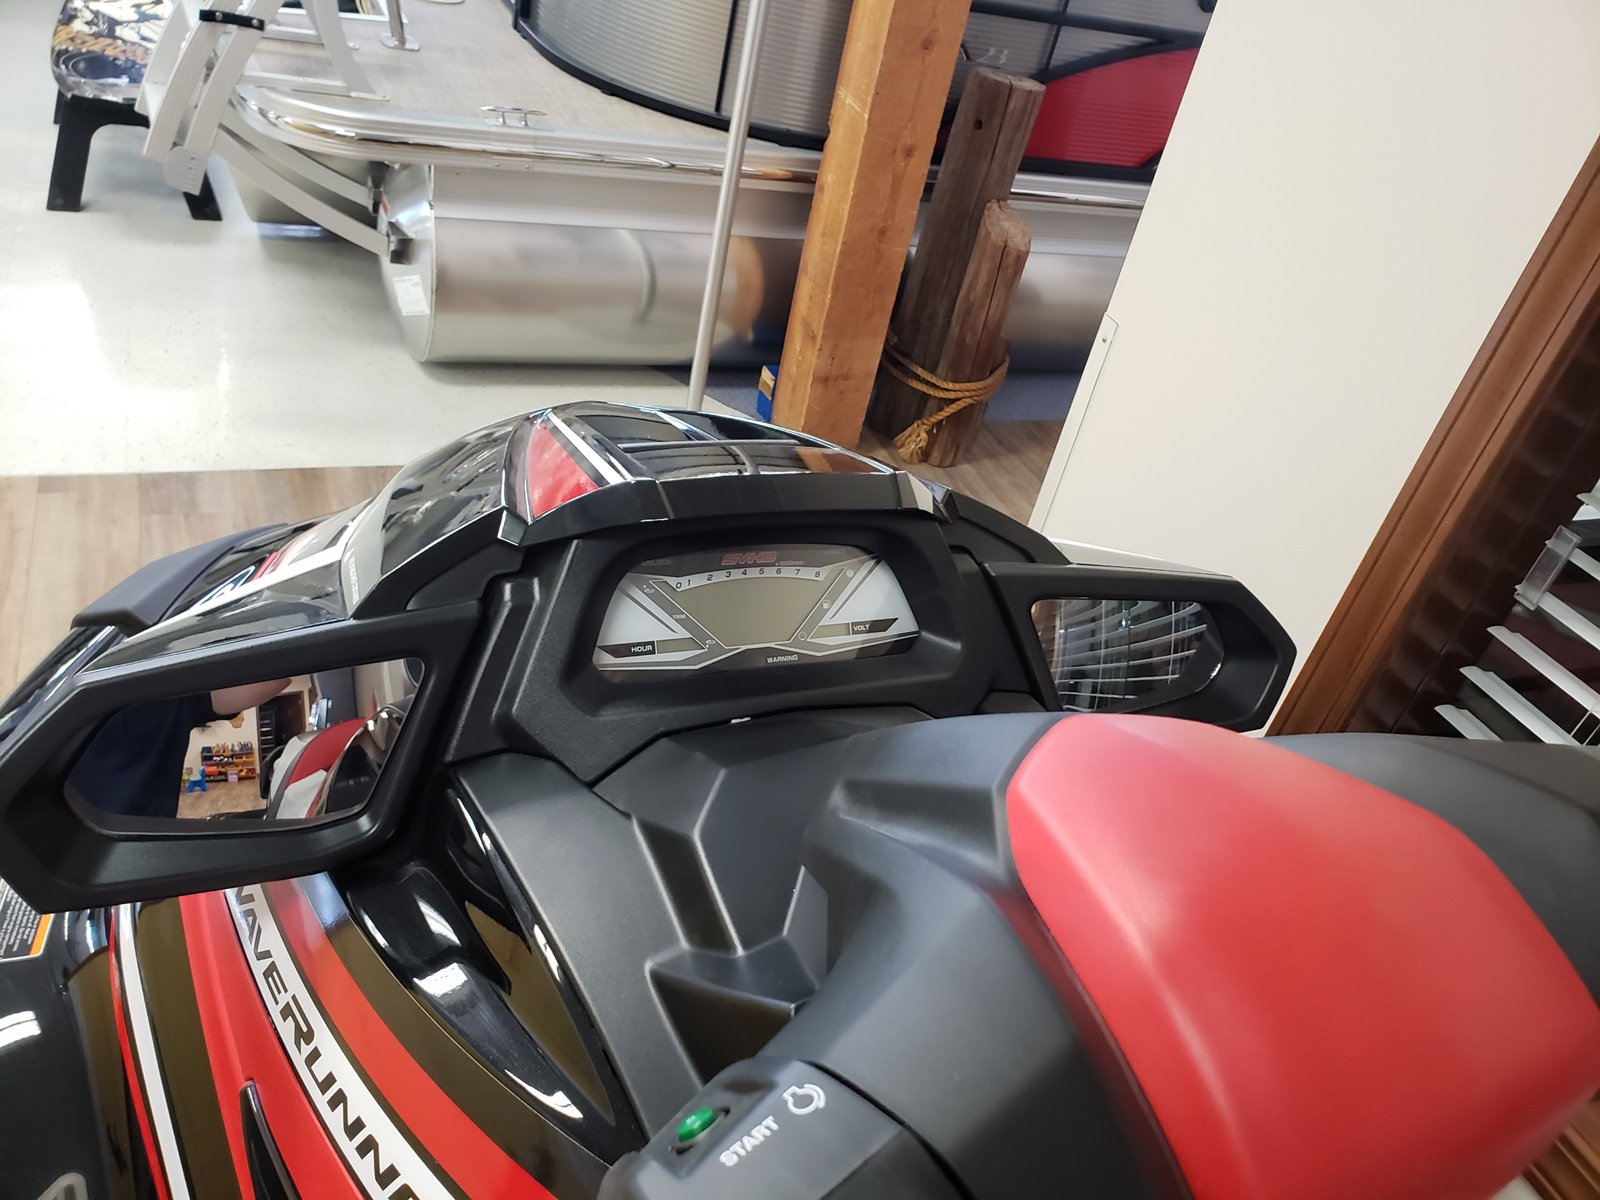 2019 YAMAHA GP1800R - Spend-A-Day - N61163 - Spend A Day Marina